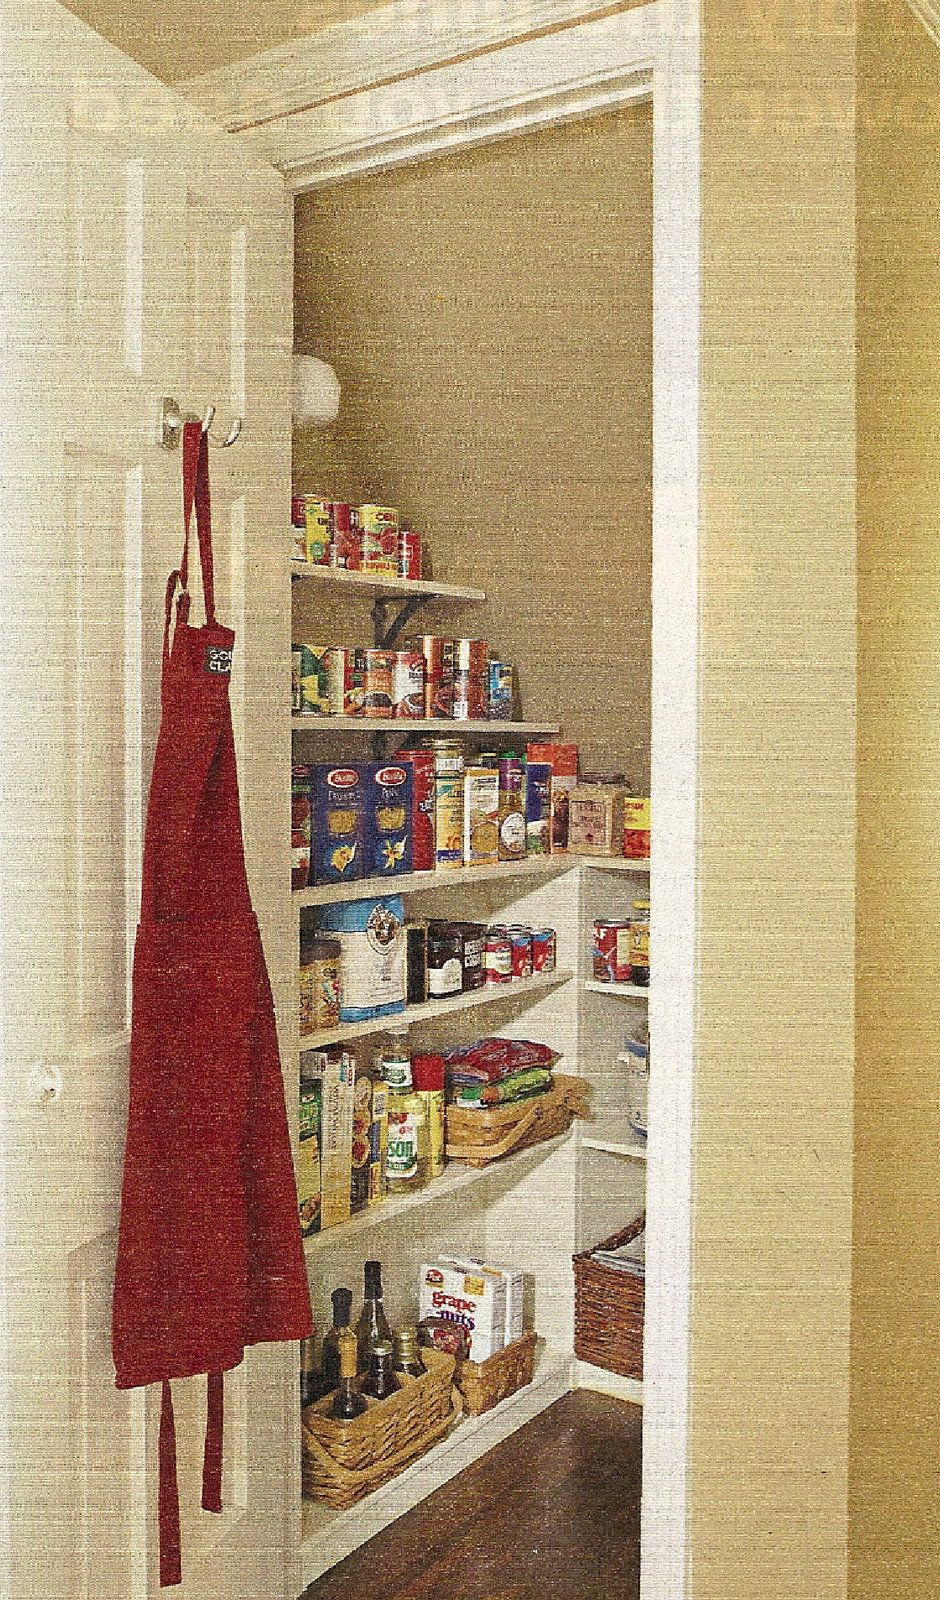 Pantry Under Stairs Under Stair Pantry Or Cleaning Closet What Im Dealing With In My